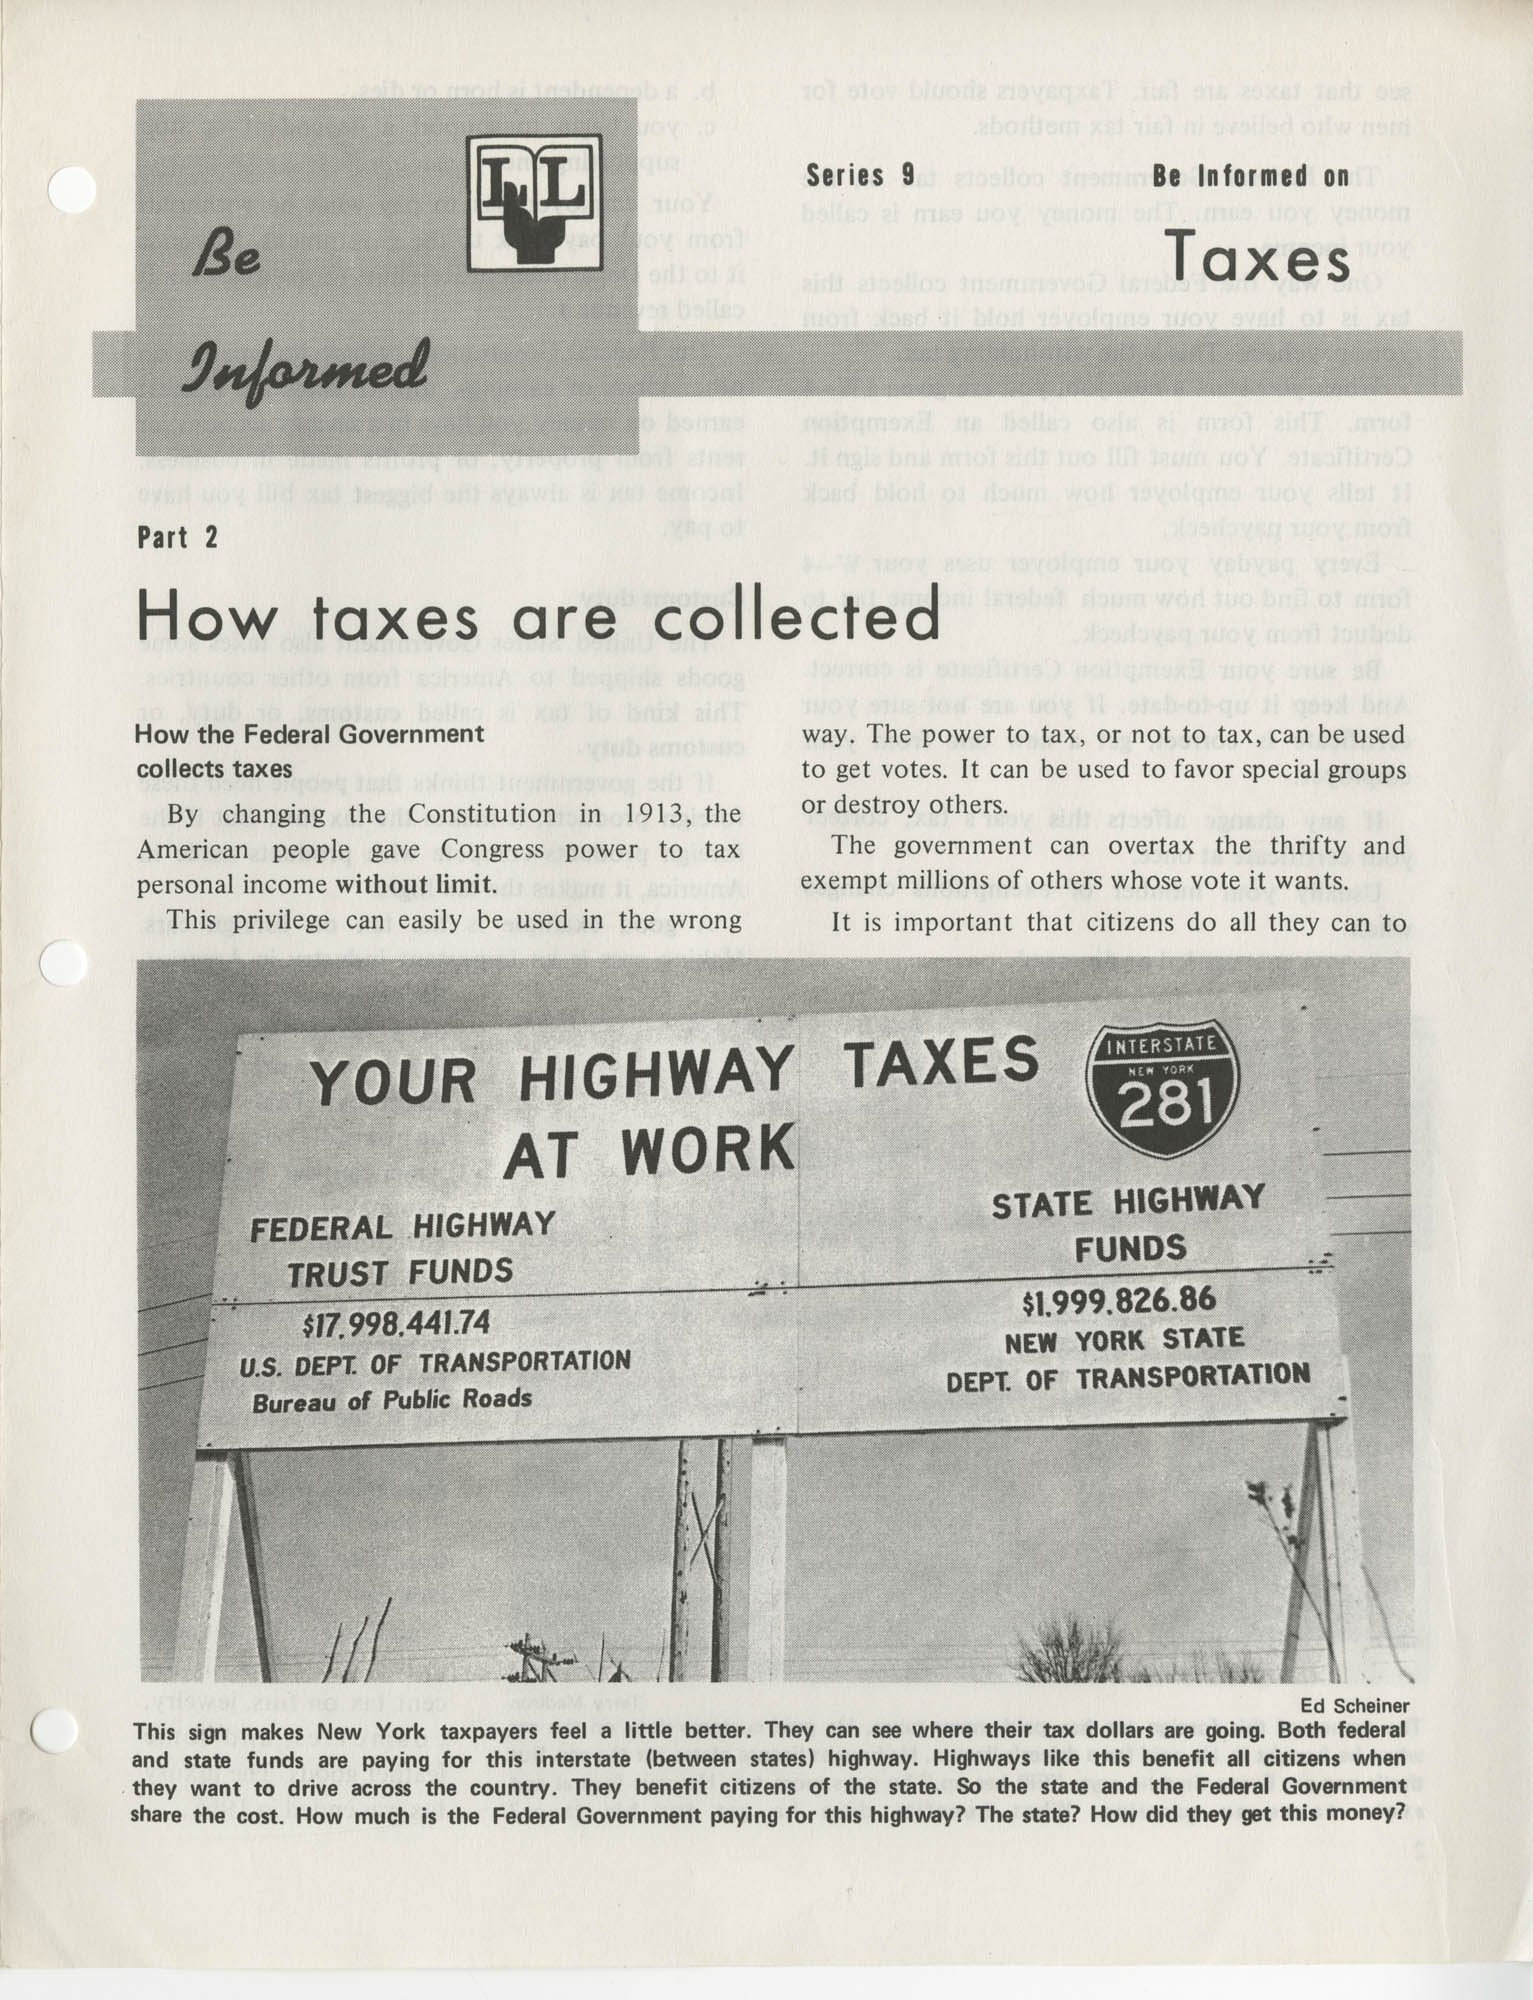 Be Informed, Taxes, Part 2